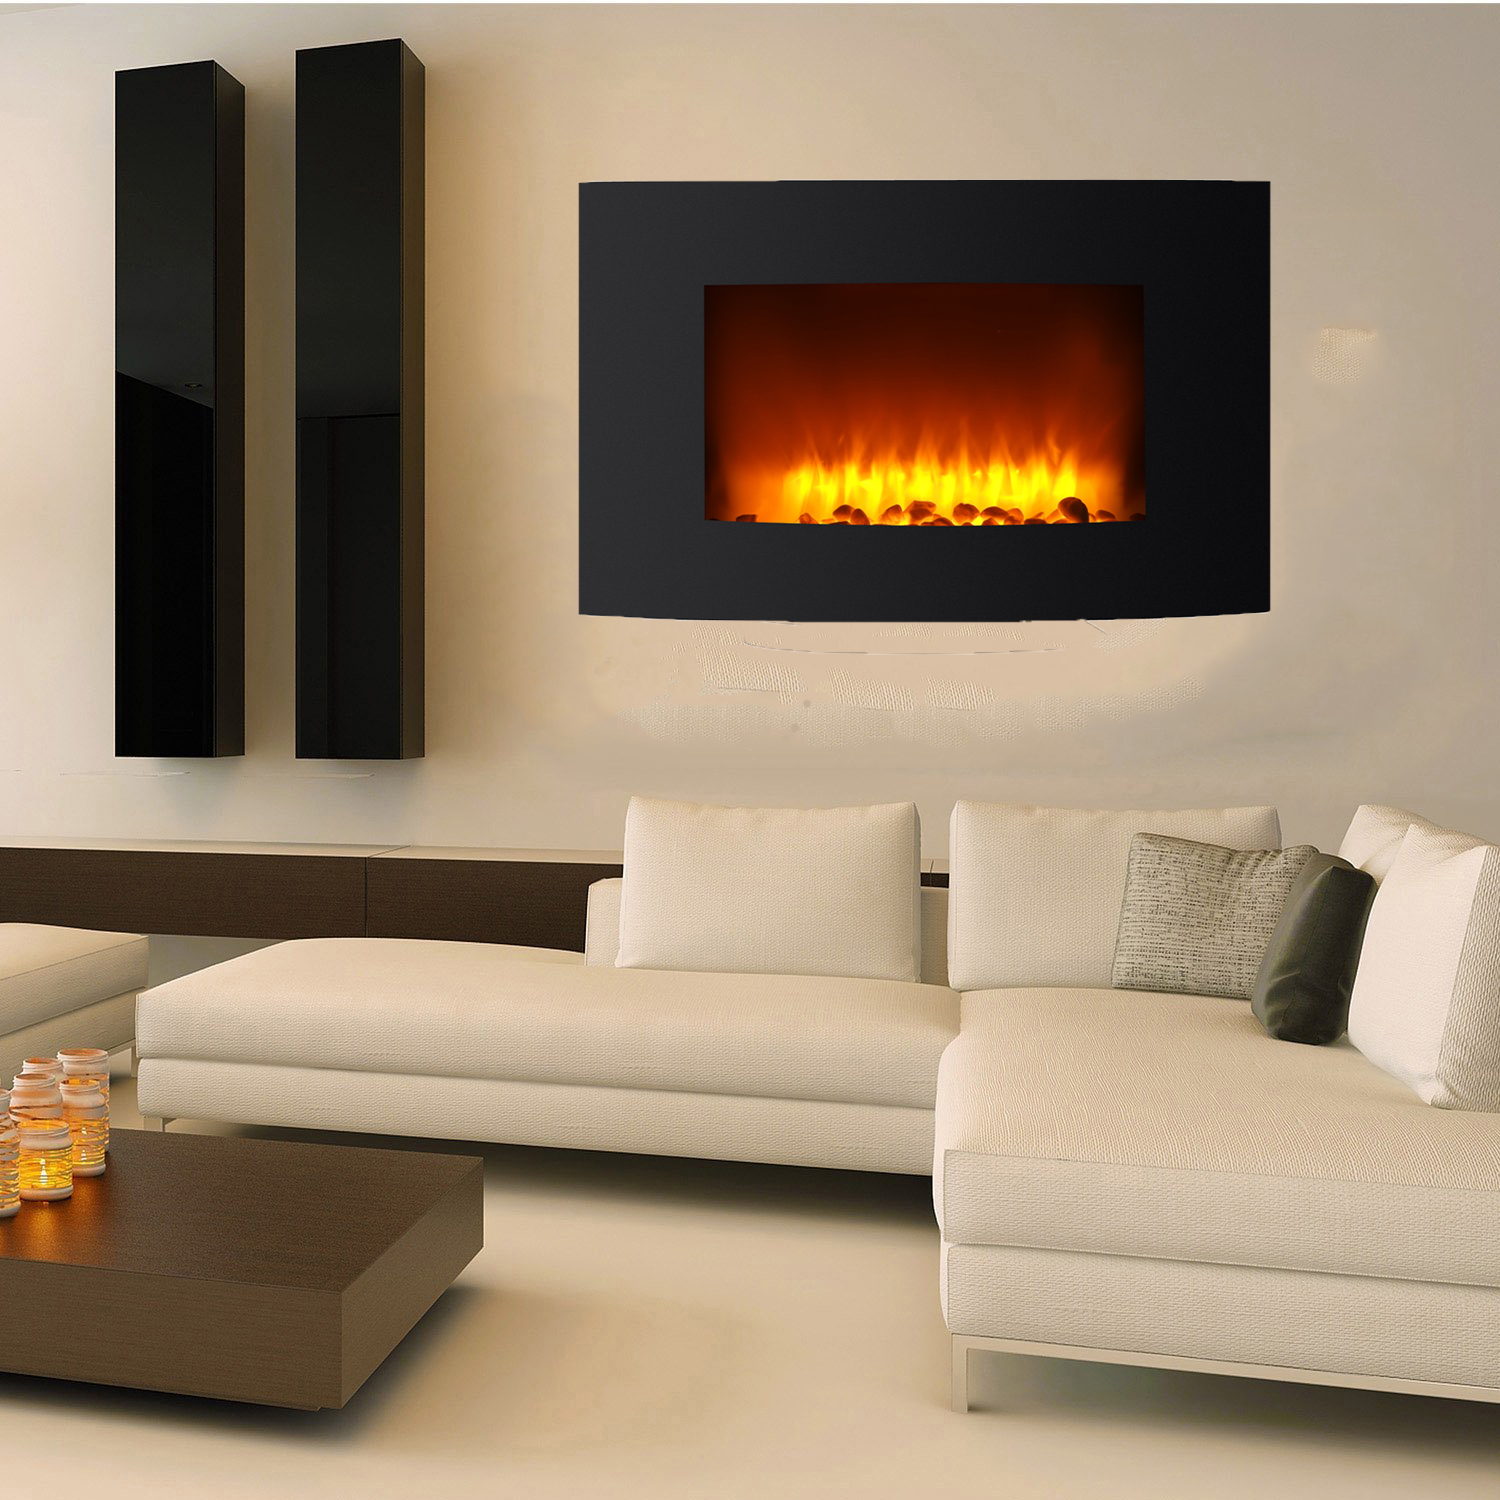 "Ktaxon 36"" Wall Mount Electric Fireplace LED Heater Remote Control"